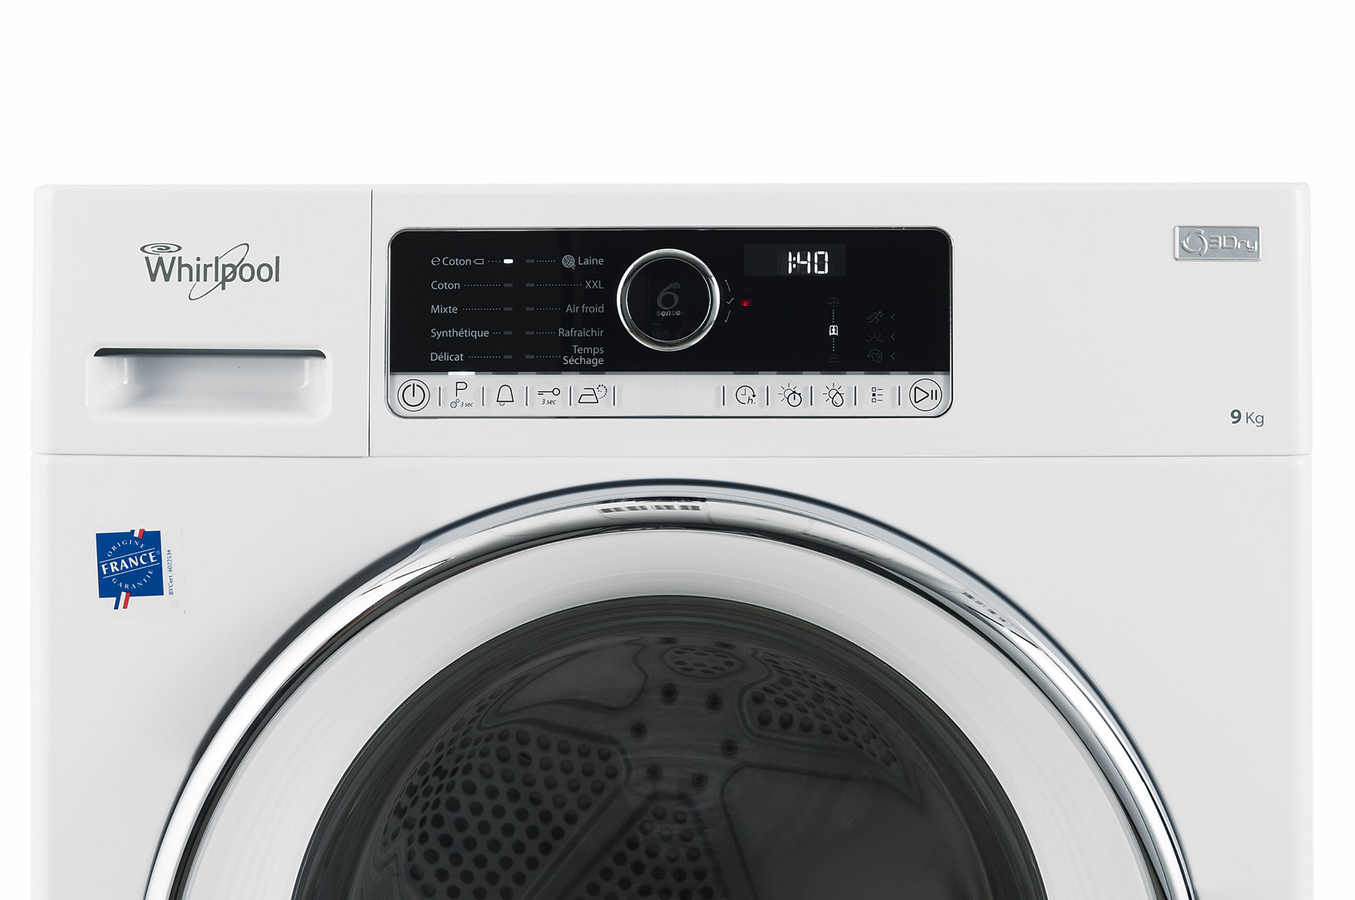 Whirlpool hscx90422 supreme care s che linge for Temps sechage seche linge